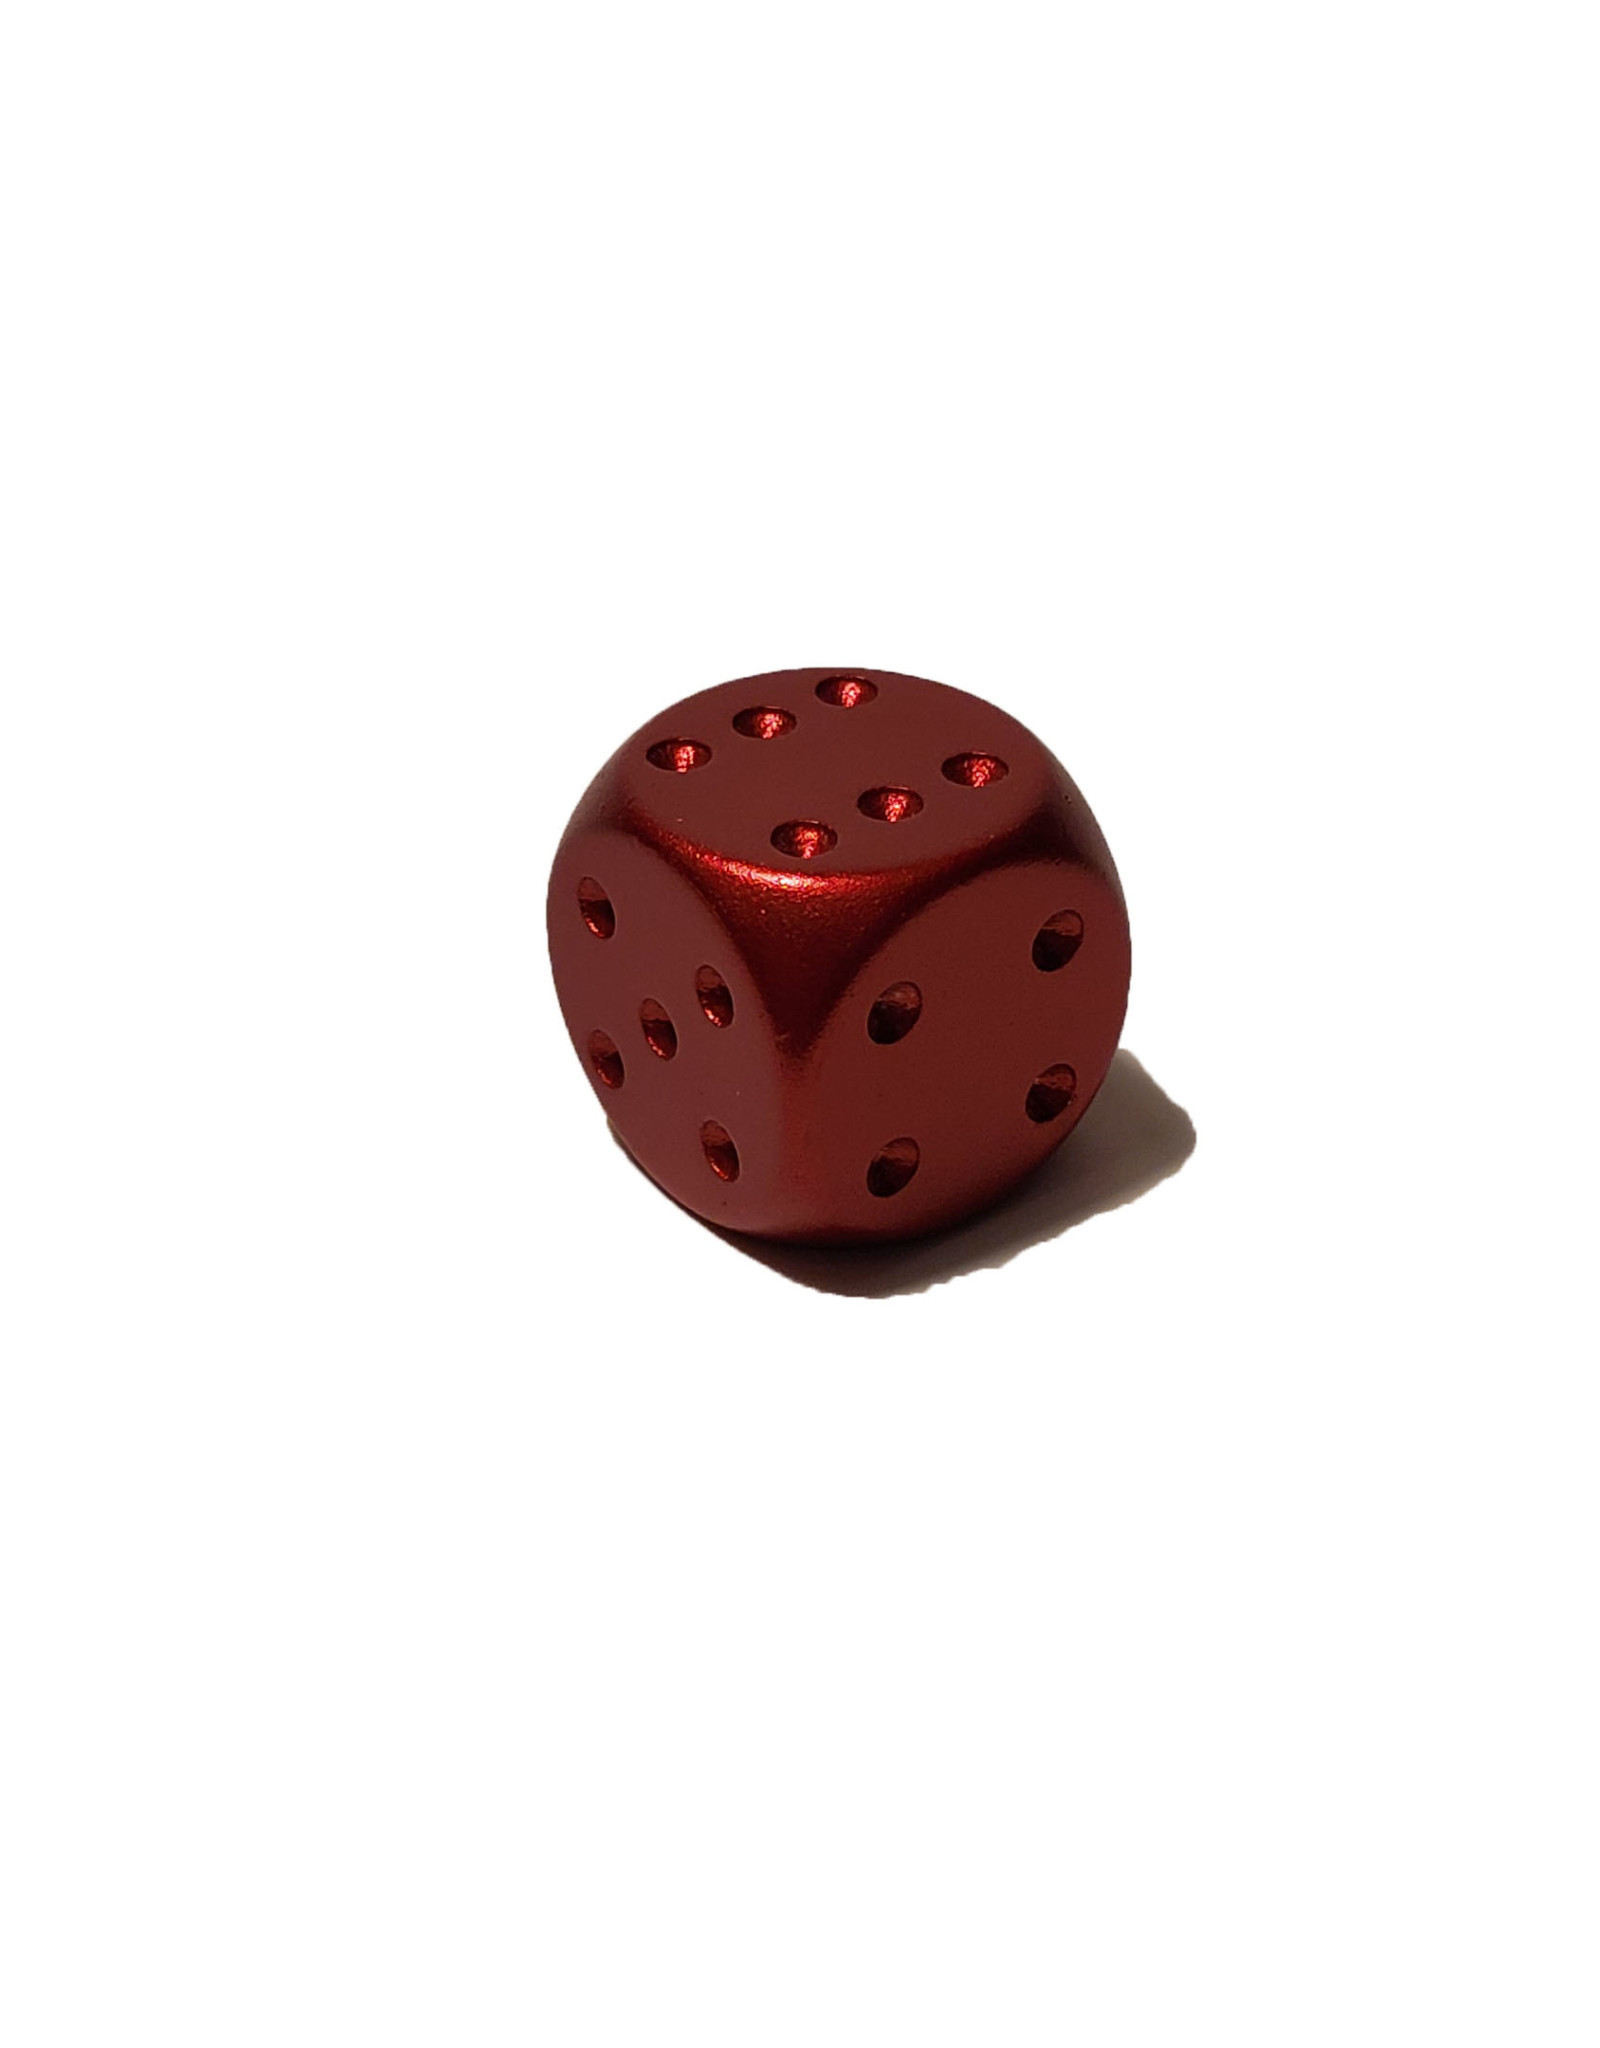 Pipped Aluminum D6 - Red